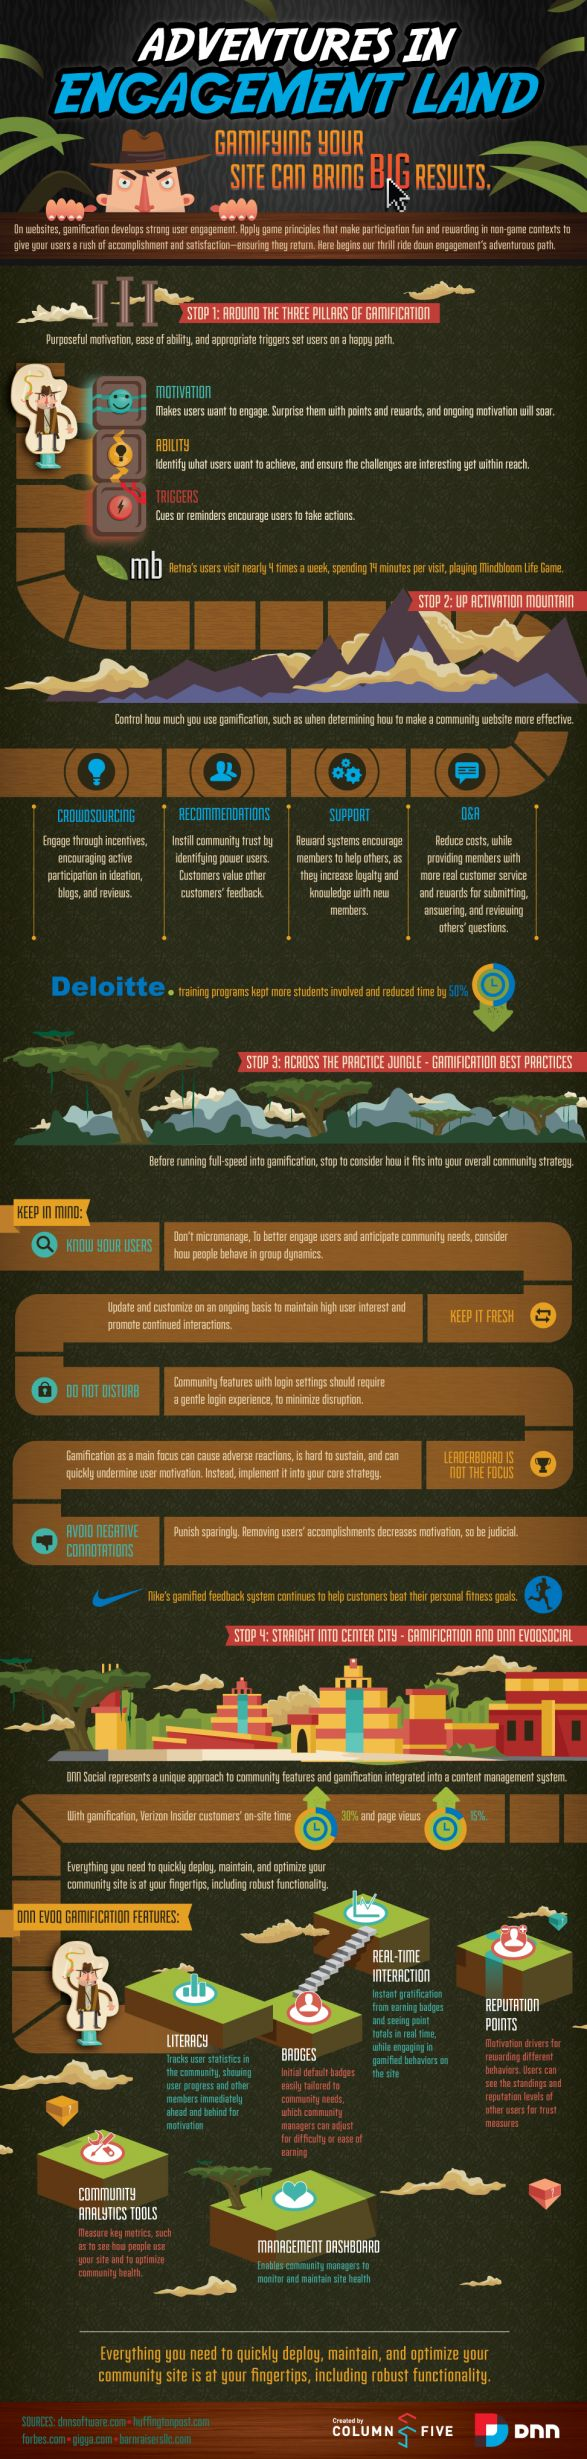 Basic facts about Gamification #gamification